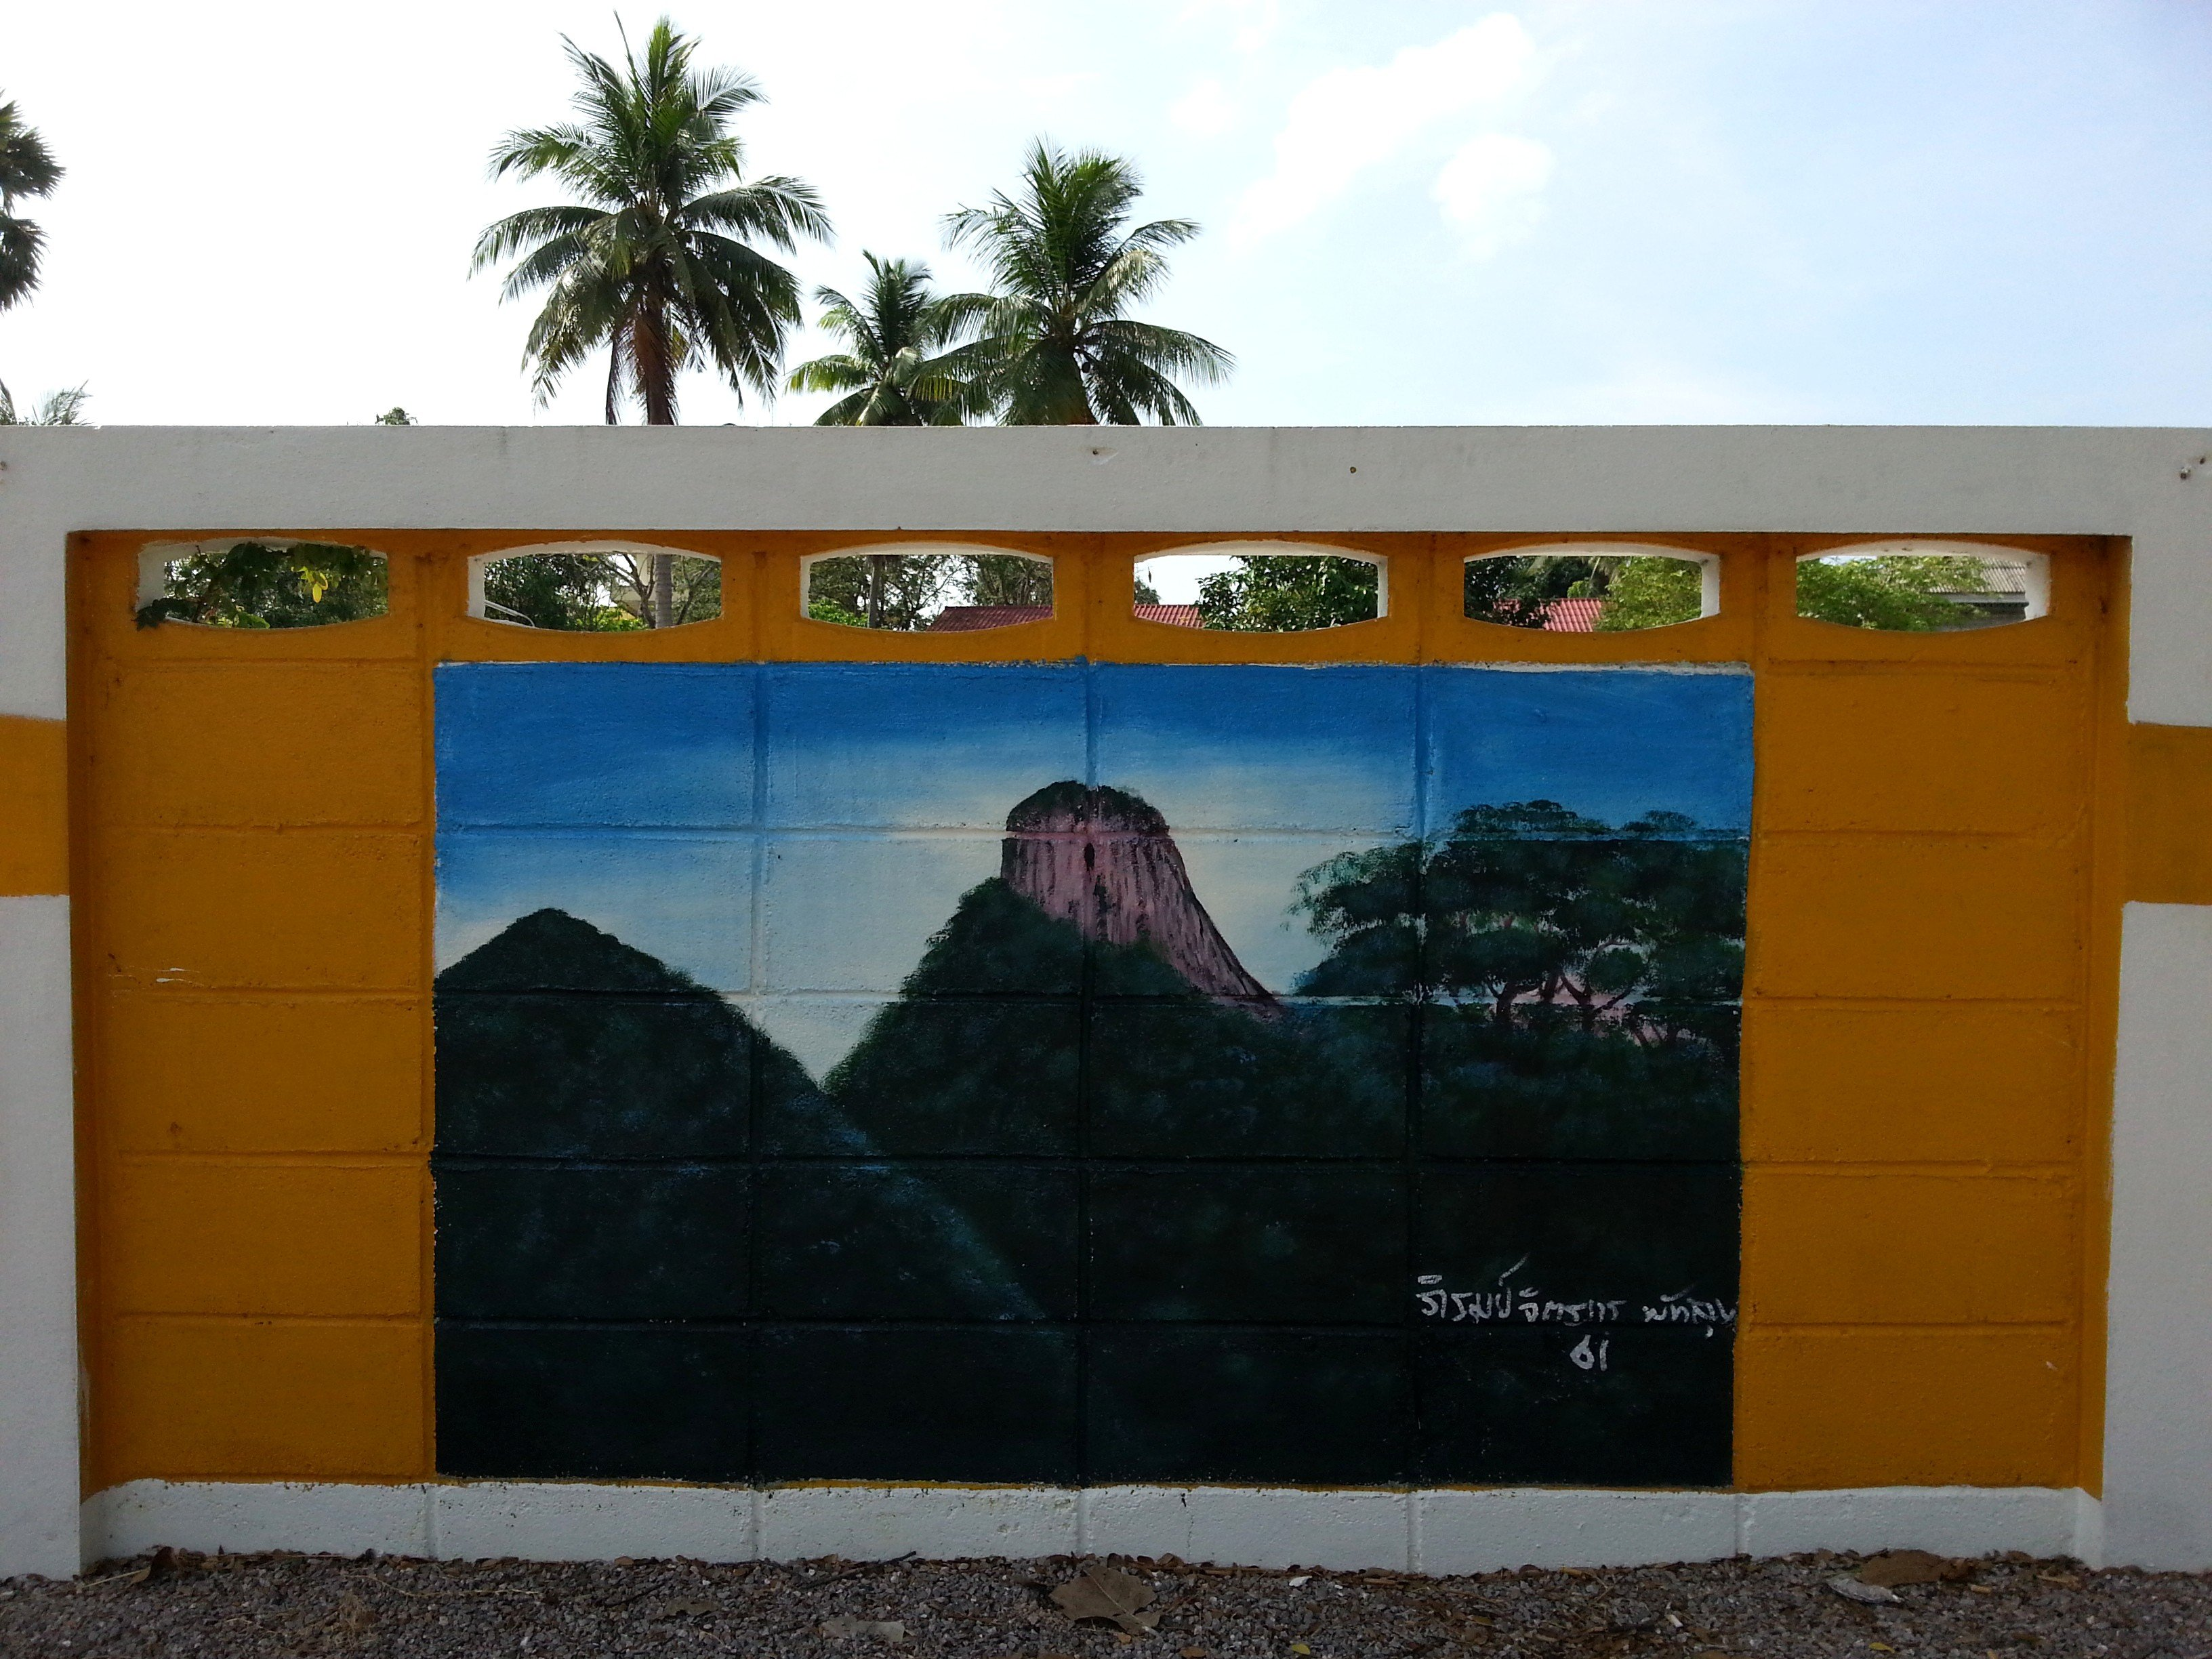 Phatthalung's famous hills are a popular subject for local street artists